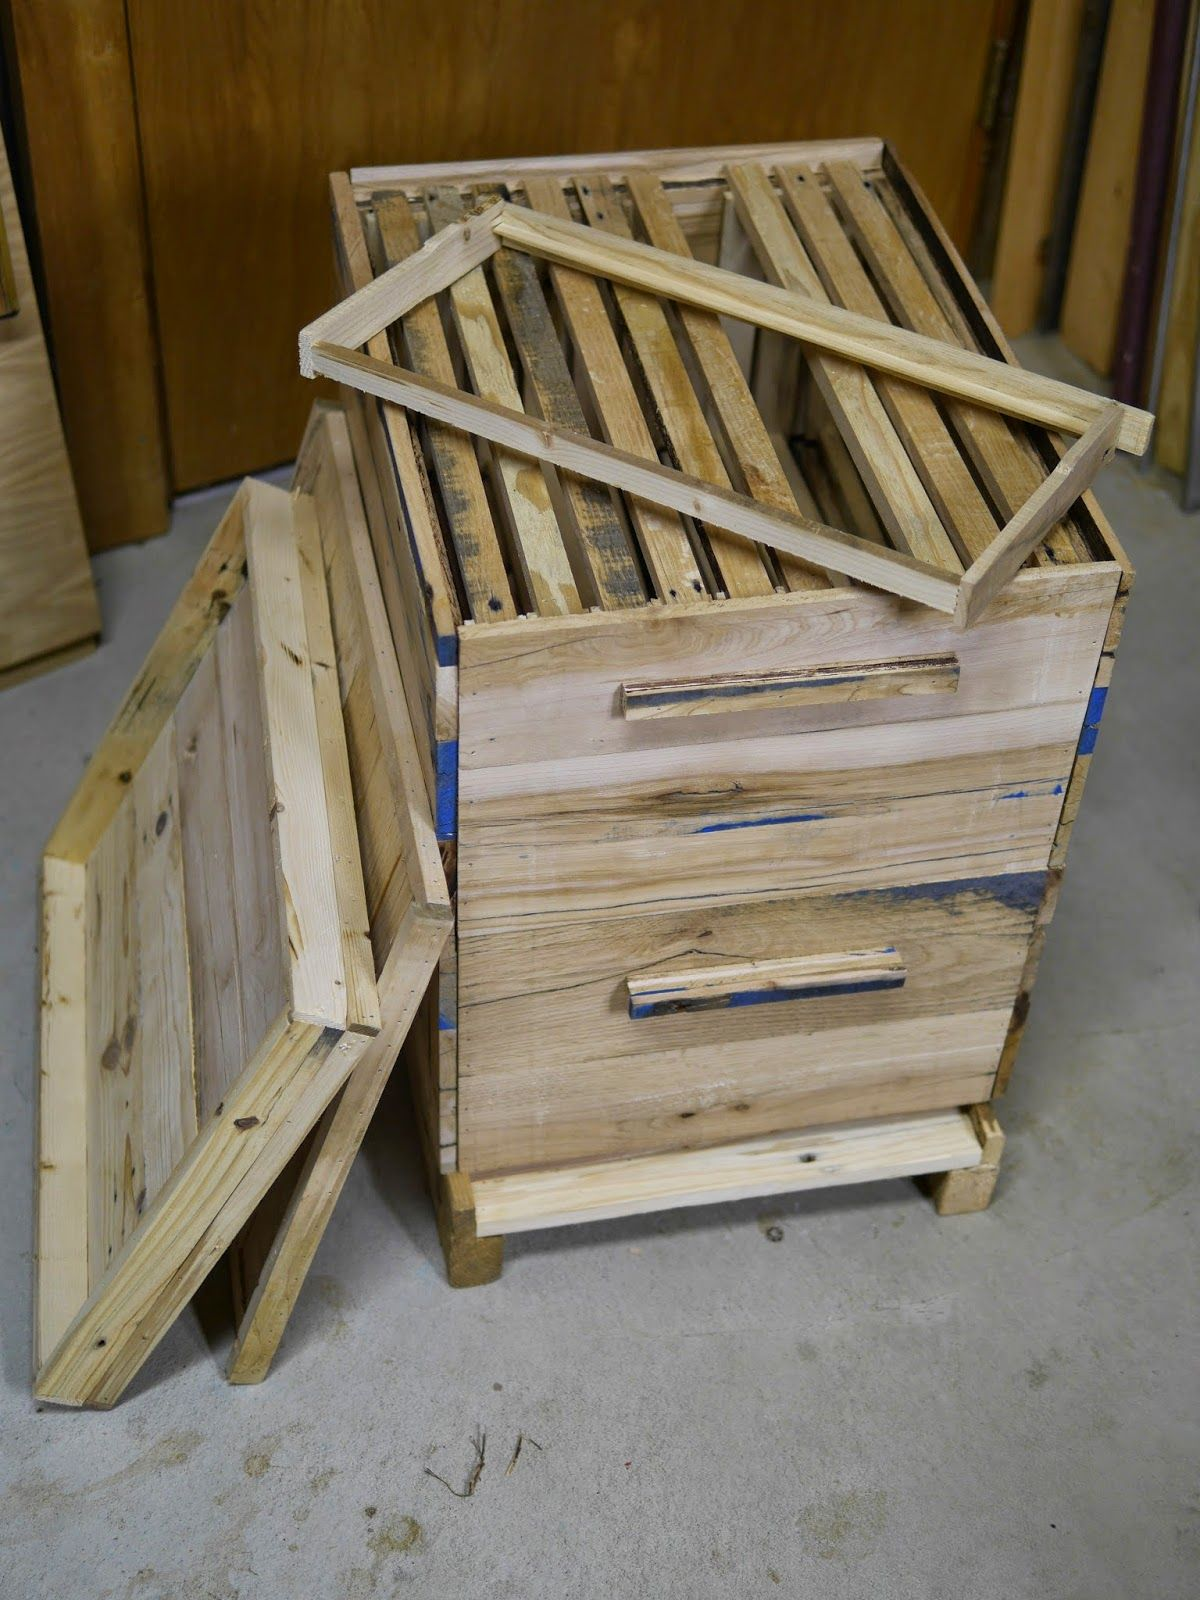 Adventures Down Under How to Make a Beehive from Pallets